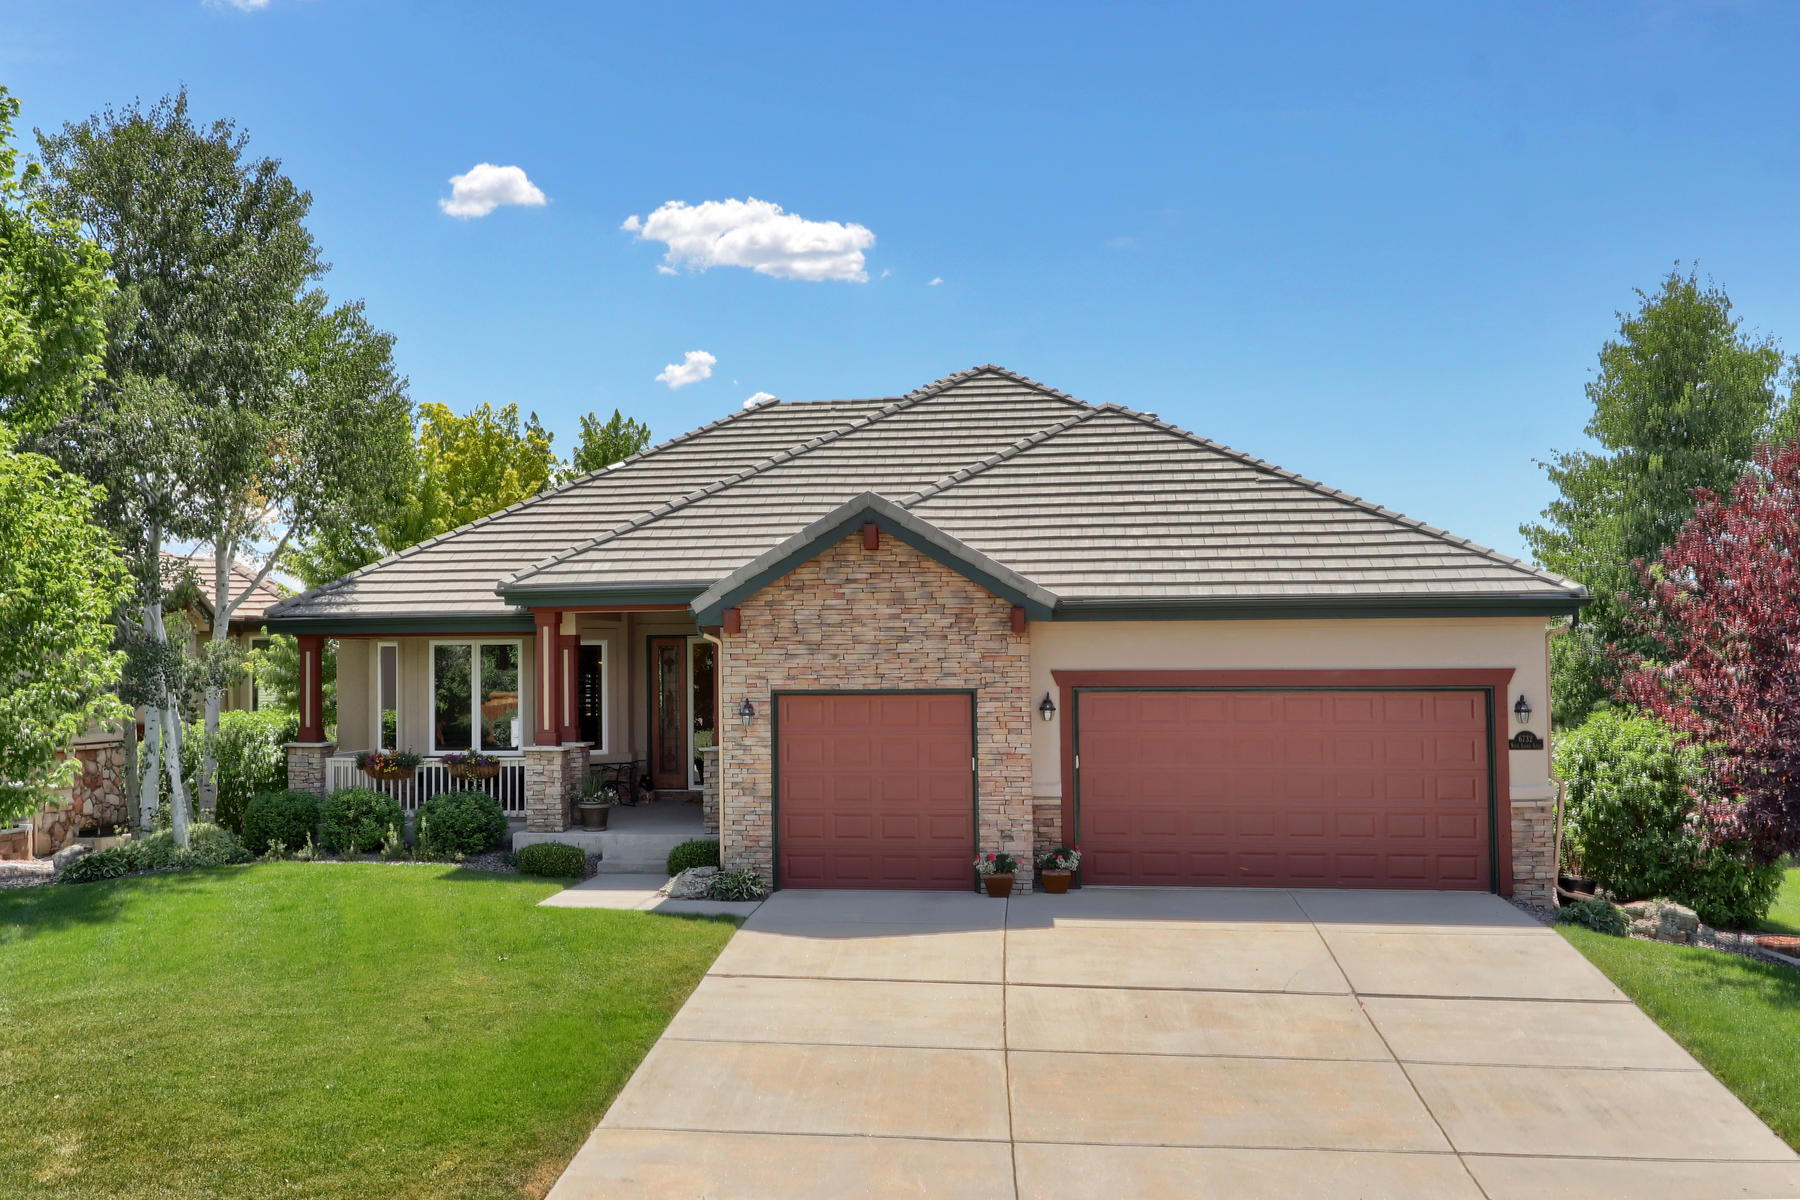 Casa unifamiliar en venta en/de 6732 Vista Lodge Loop, Castle Pines, Colorado ,80108  , EUA